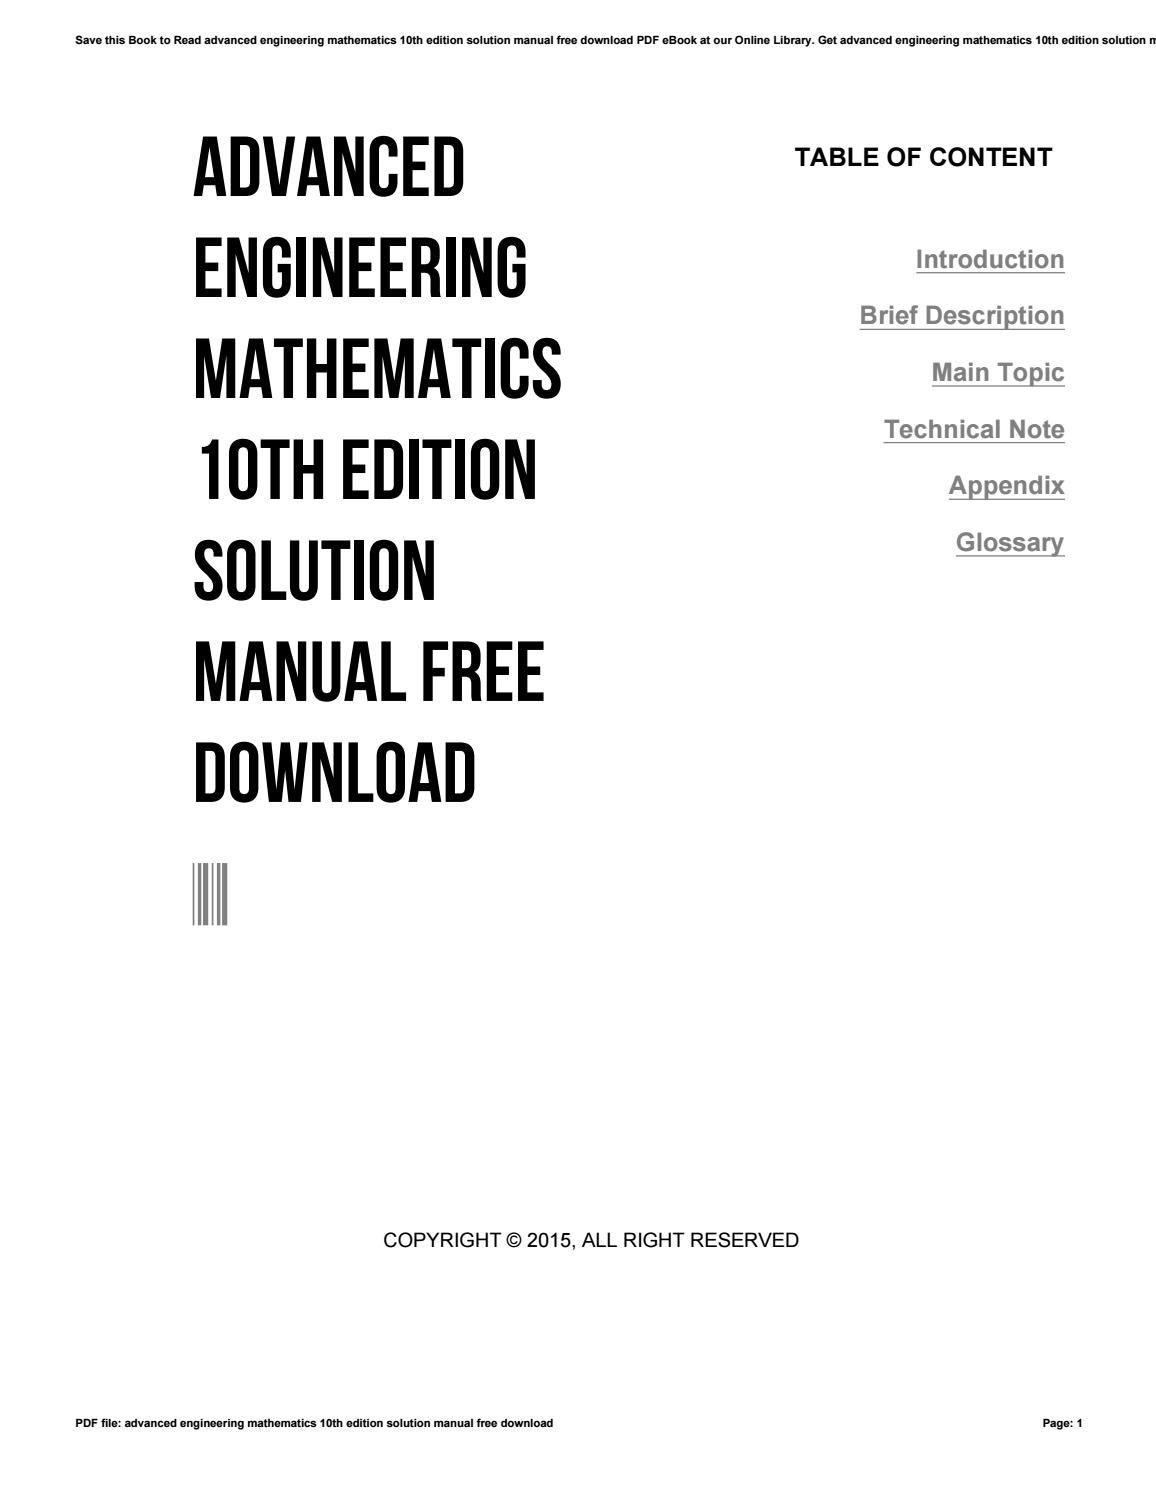 Advanced engineering mathematics 10th edition solution manual free download  by rblx91 - issuu